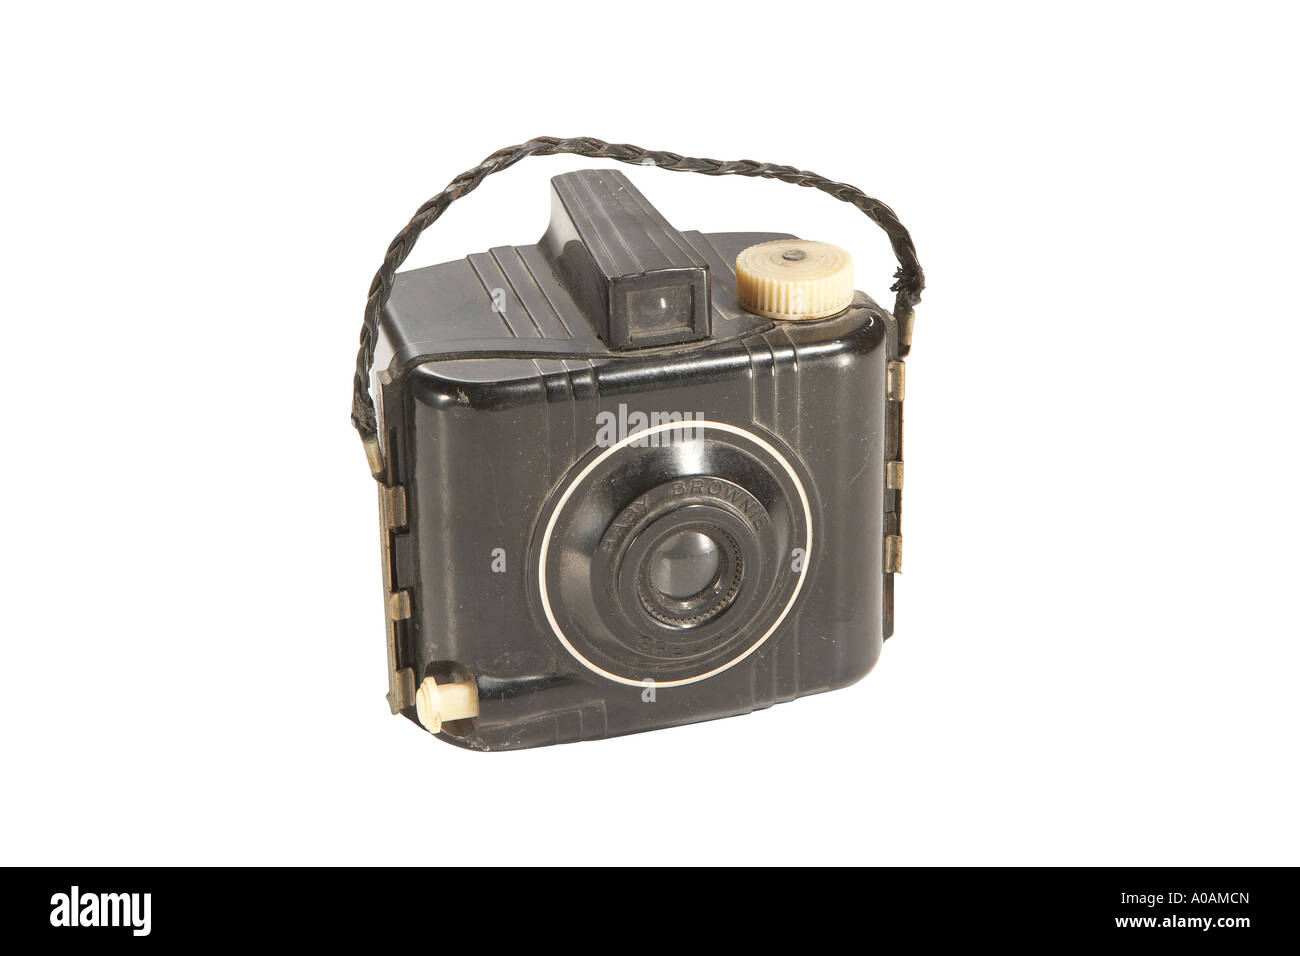 Pocket Brownie camera with clipping path - Stock Image